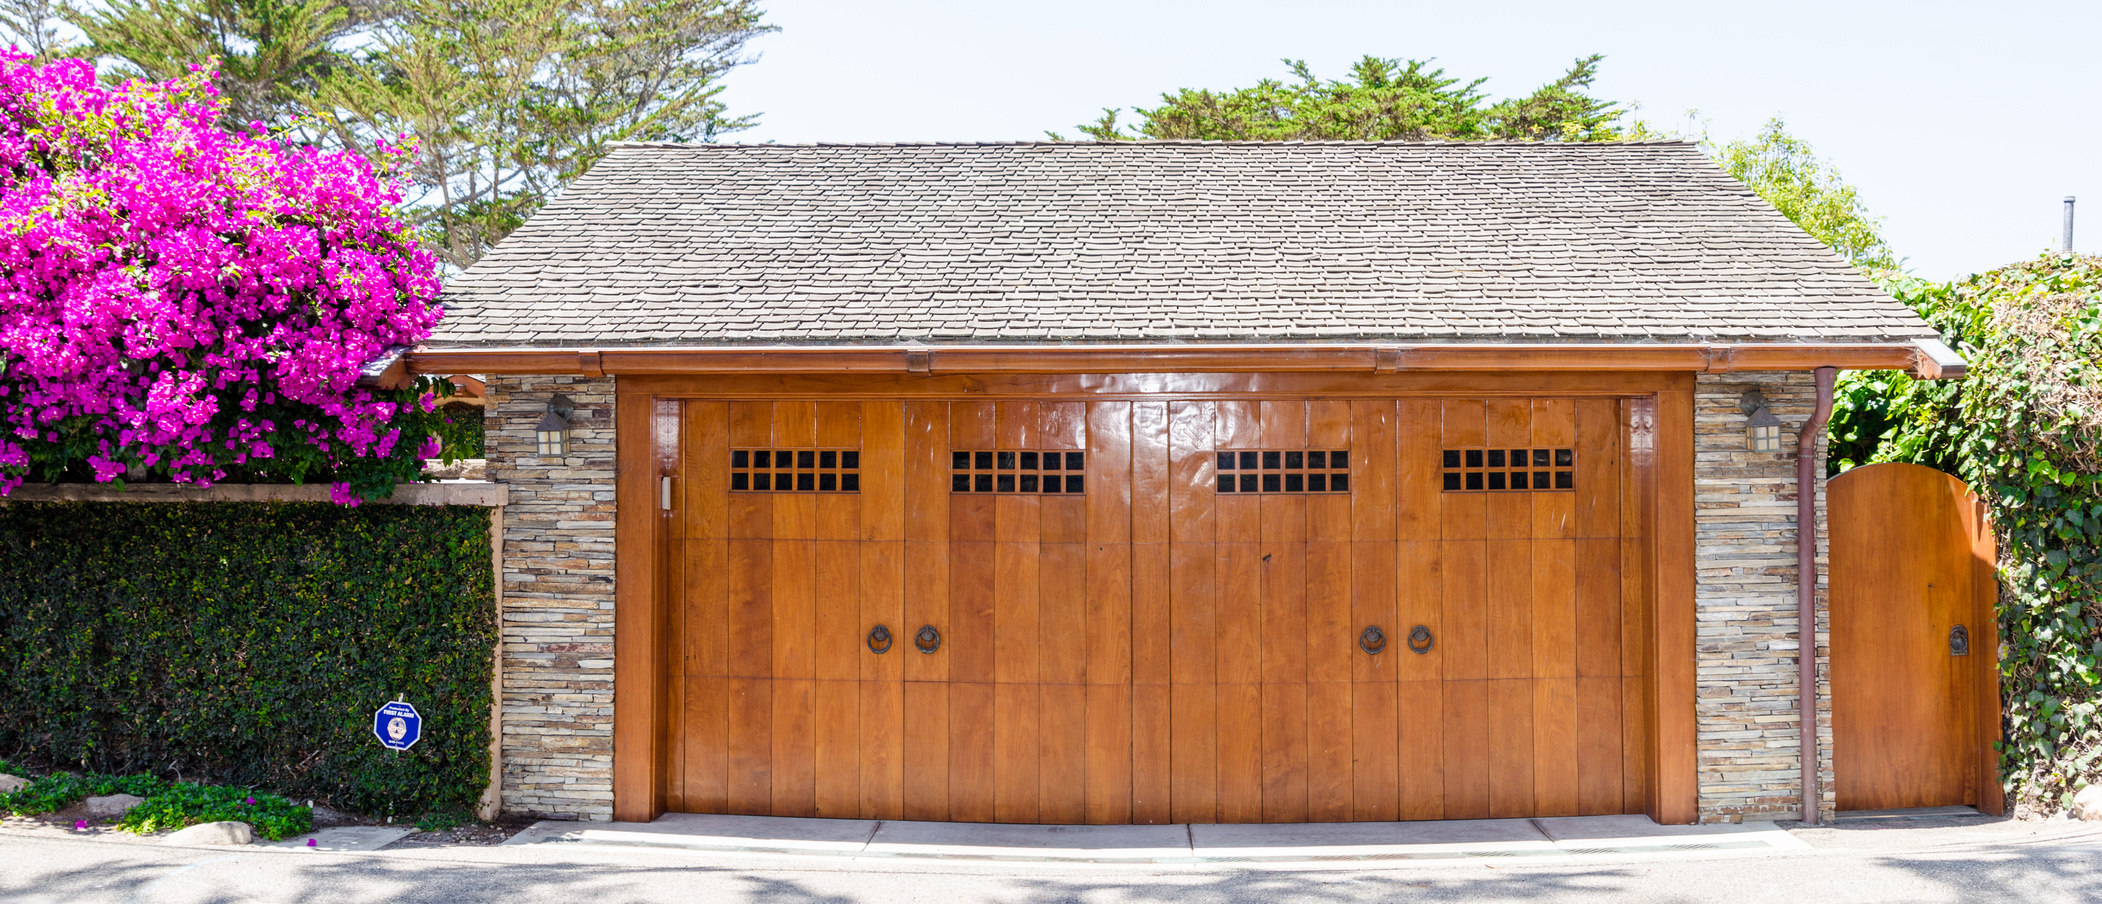 Keeping your garage cool as weather warms up a garage doors for Garage door repair west jordan utah